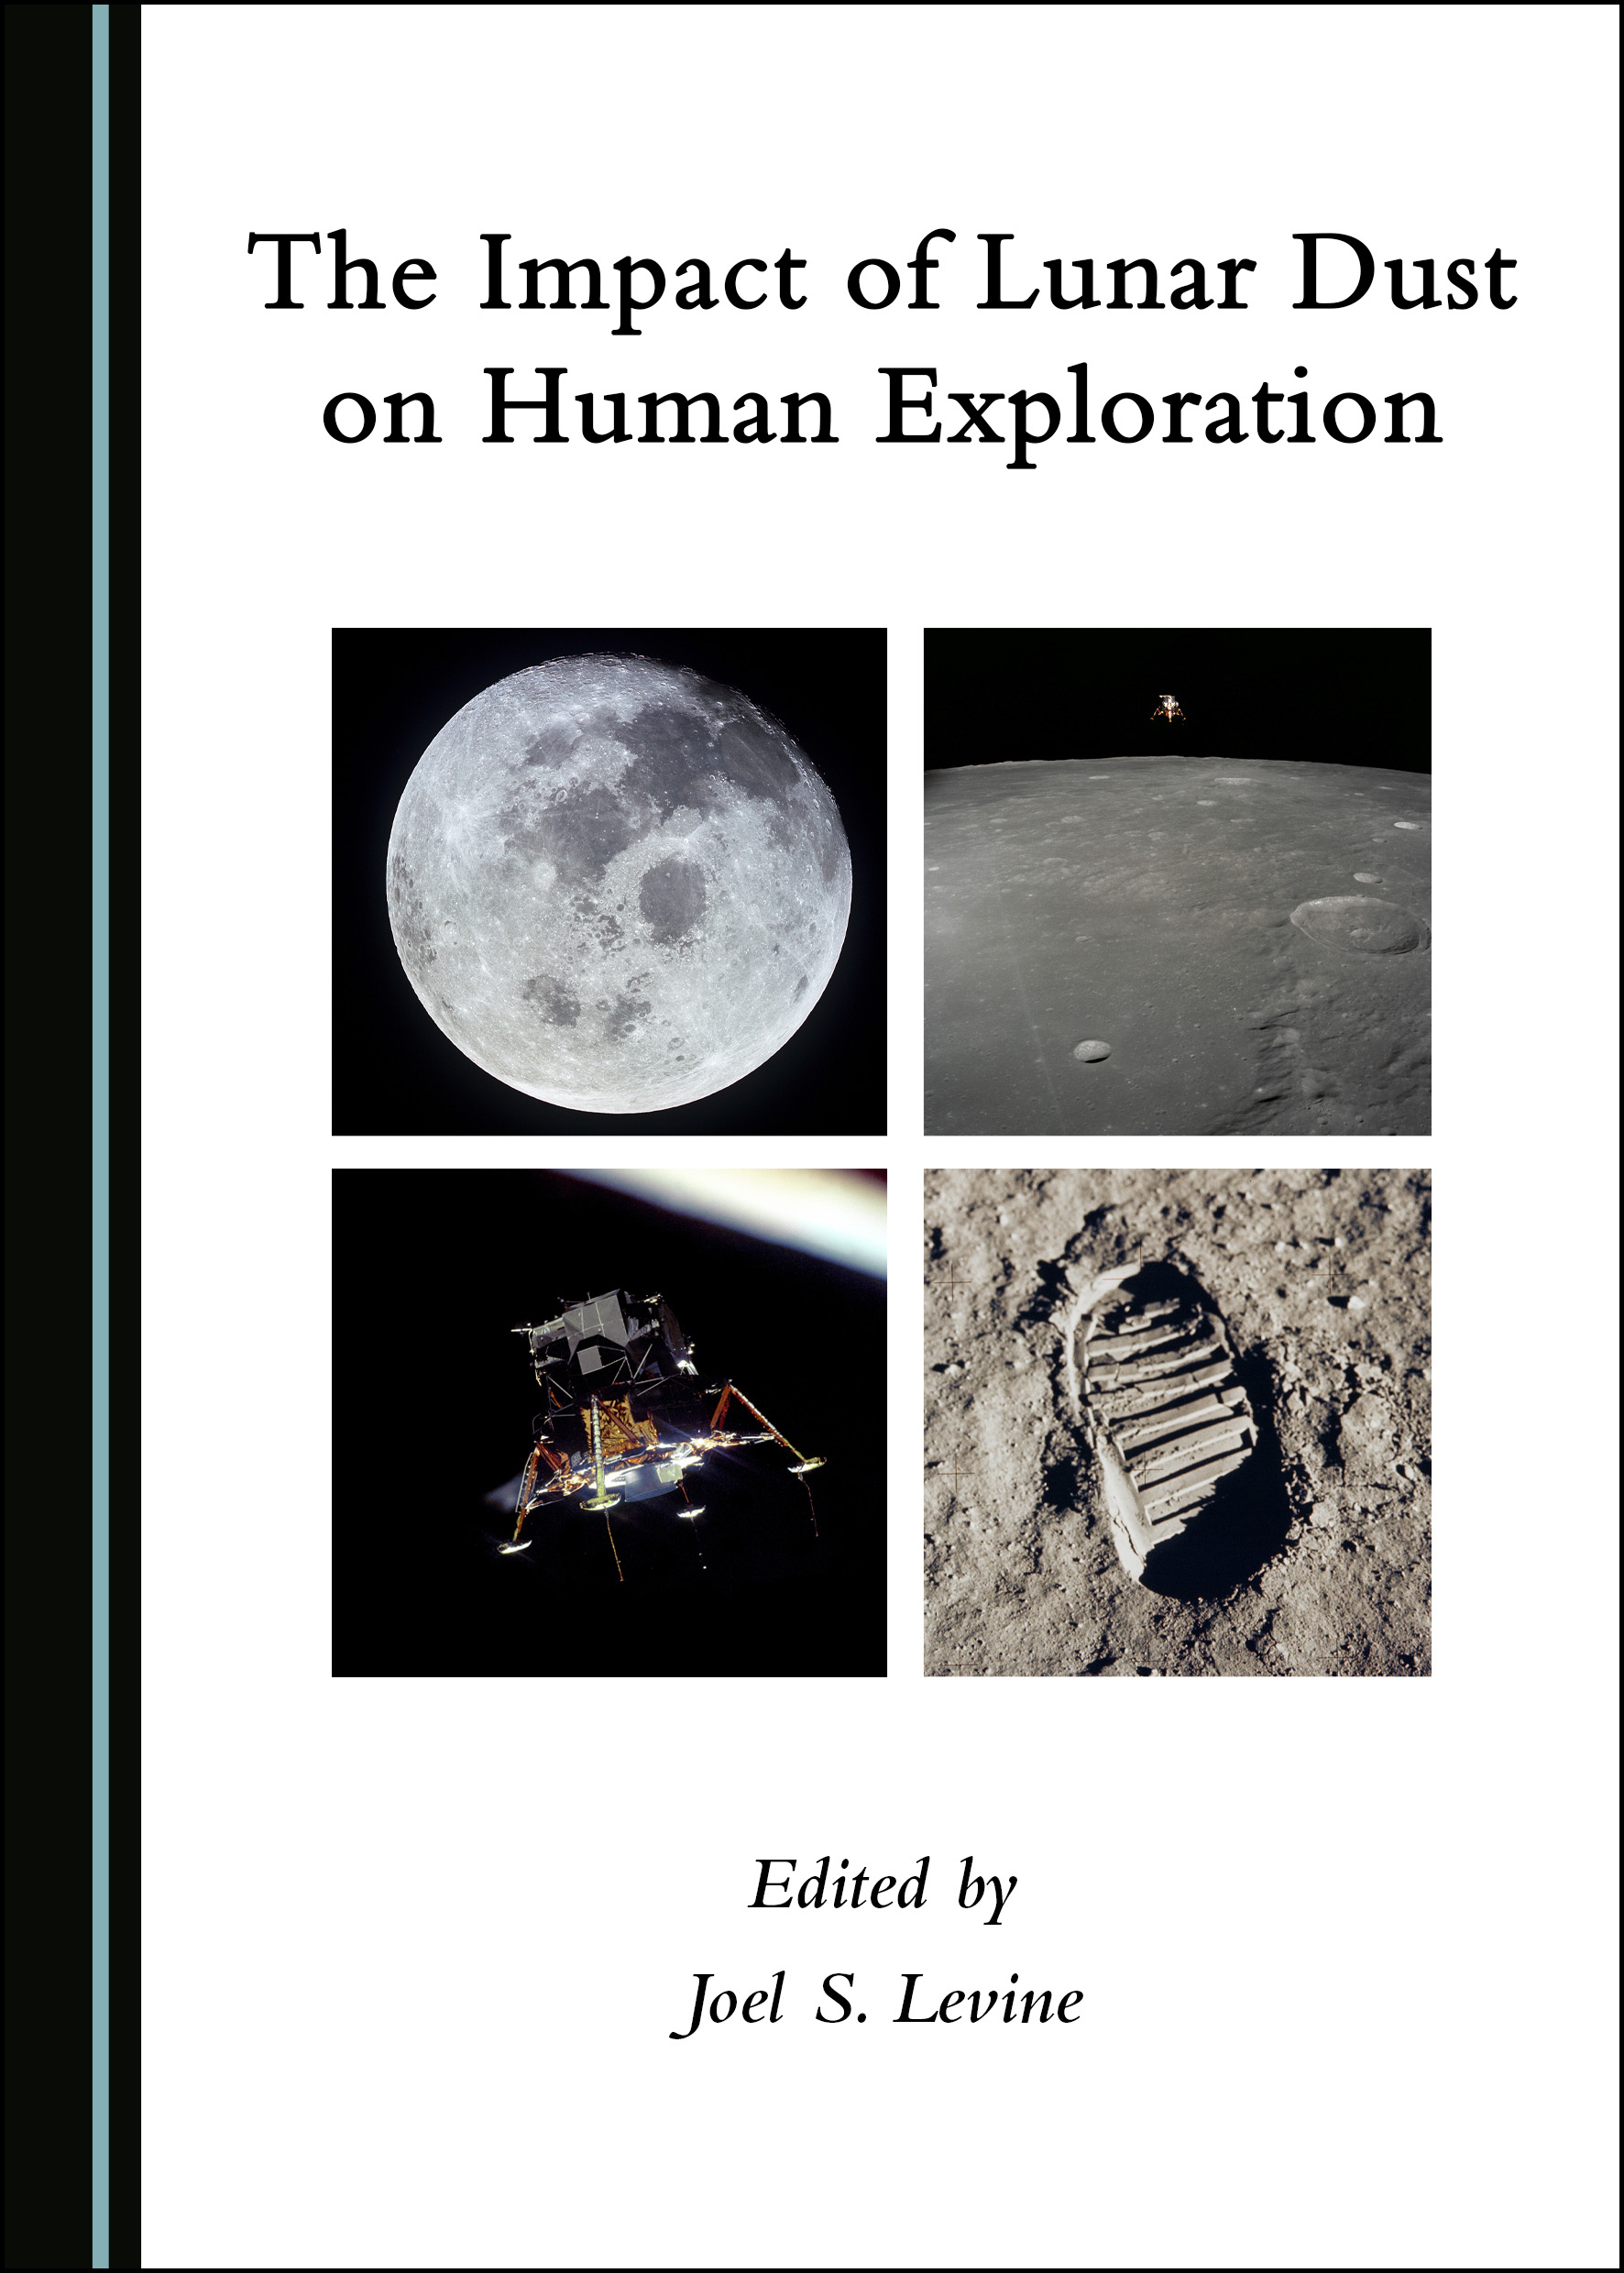 The Impact of Lunar Dust on Human Exploration